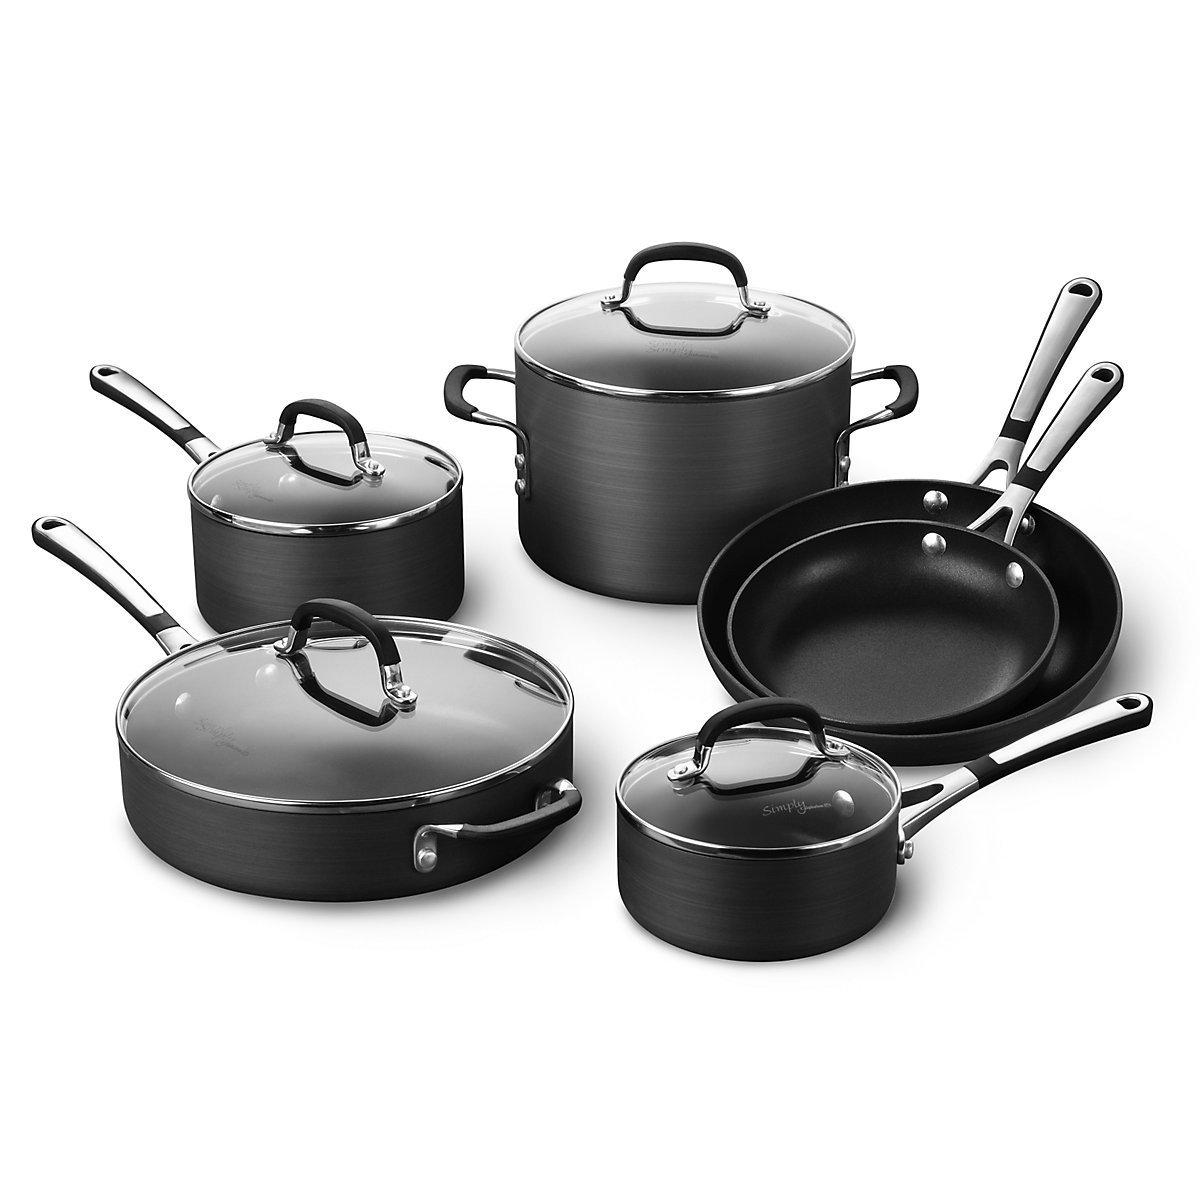 Calphalon Simply Nonstick Cookware, 10 Piece Set